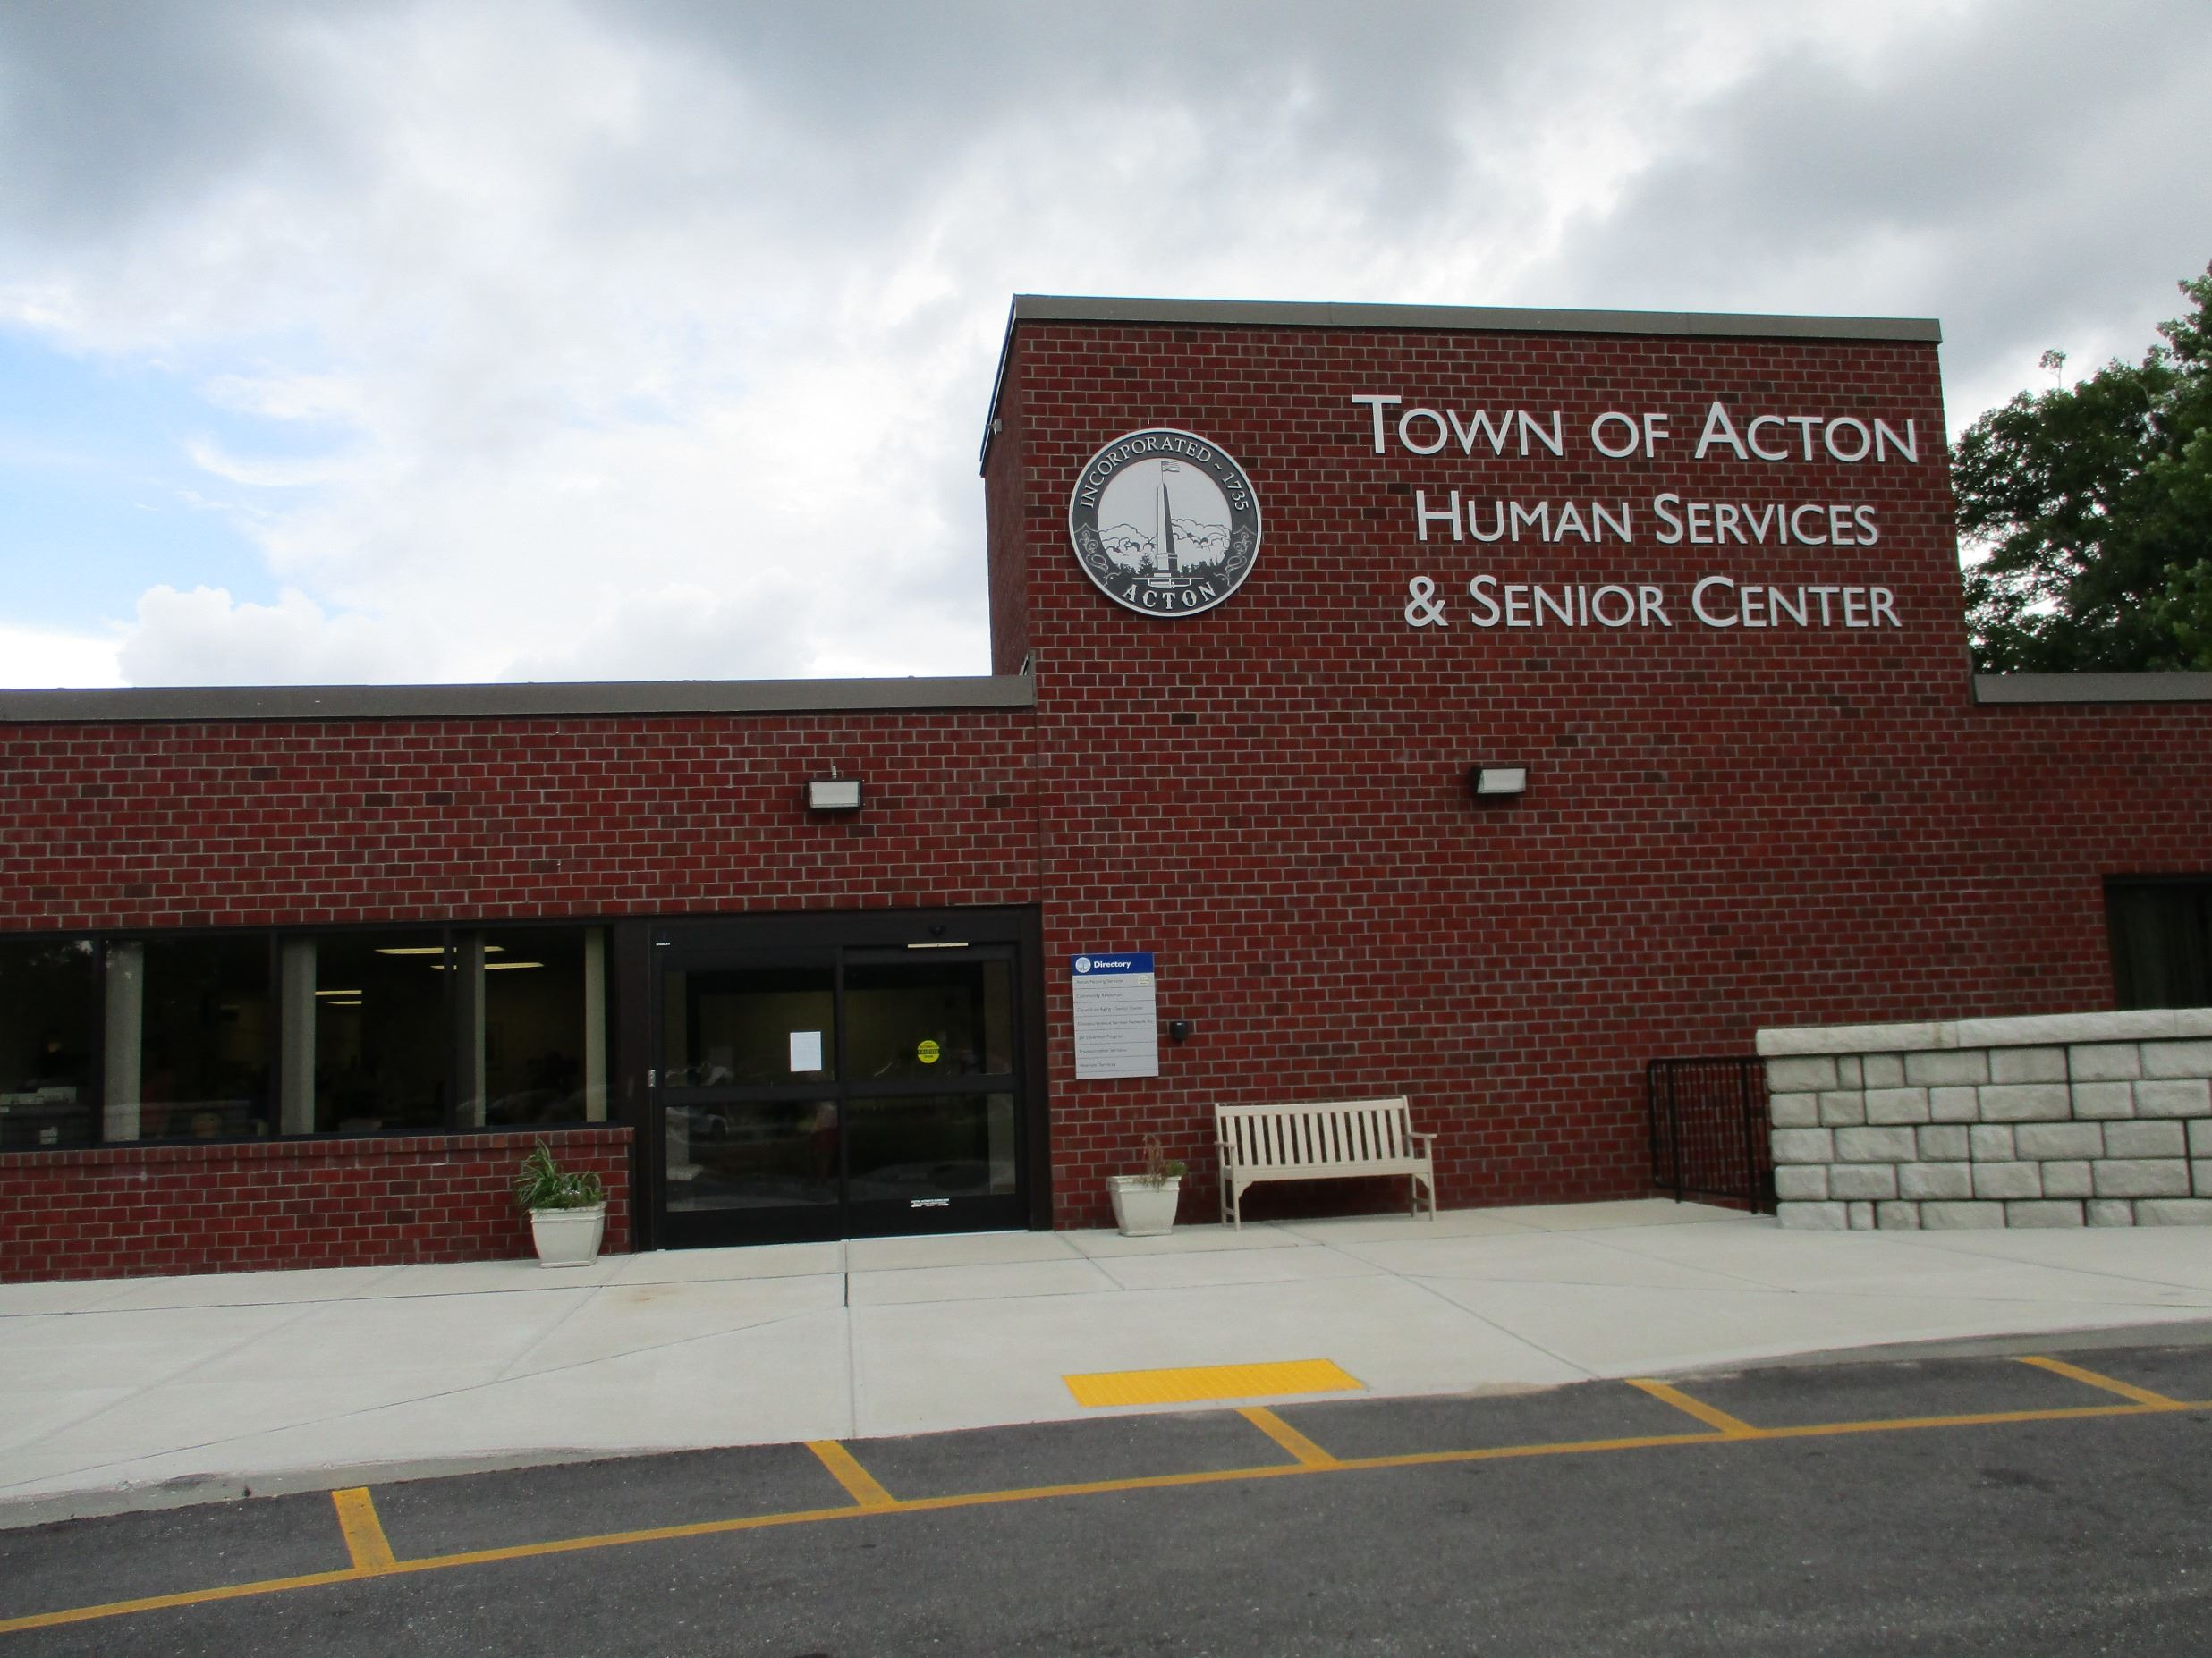 The Human Services and Senior Center Building